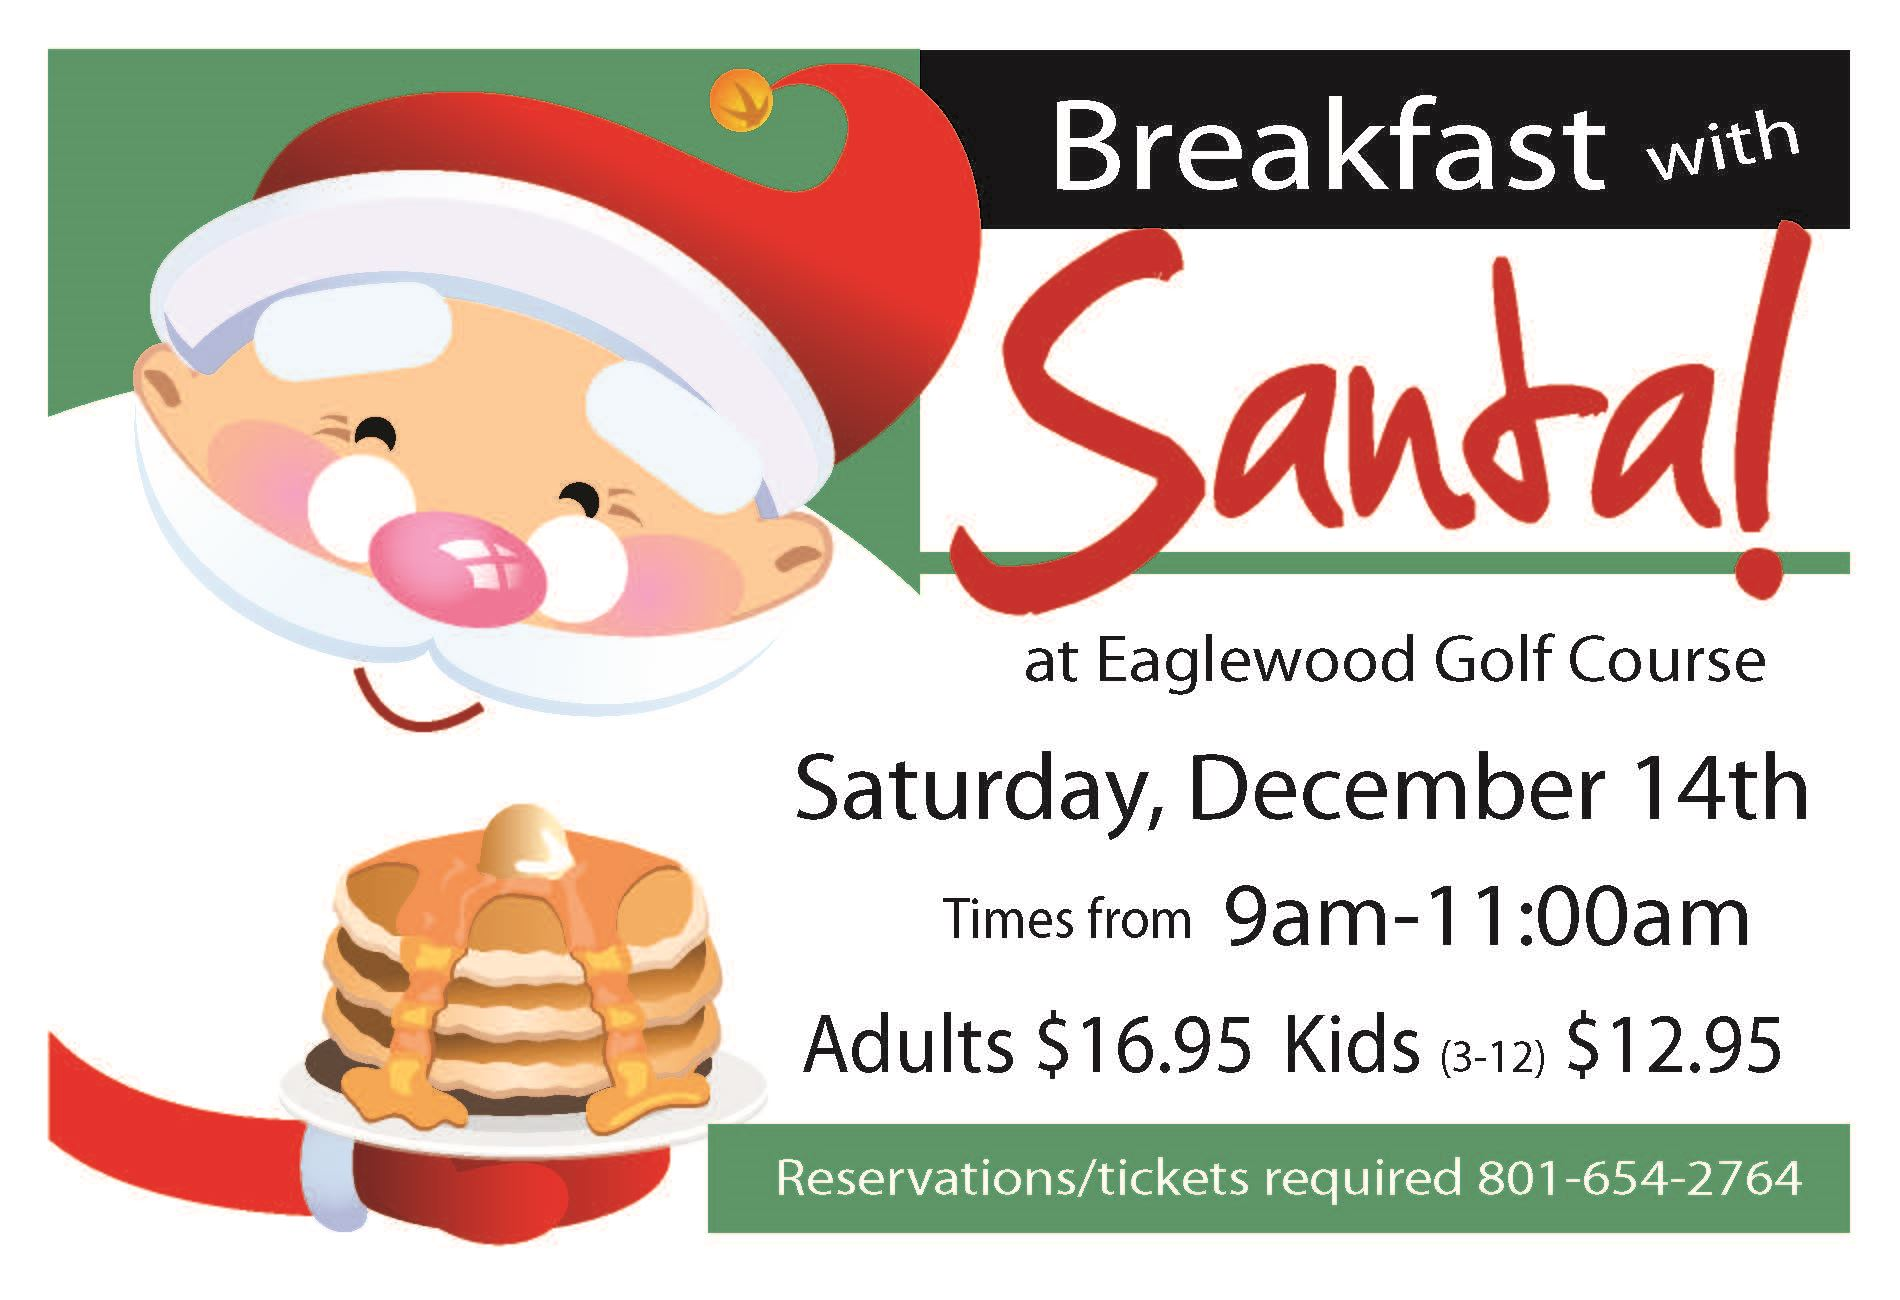 Eaglewood breakfast with santa flyer 2019